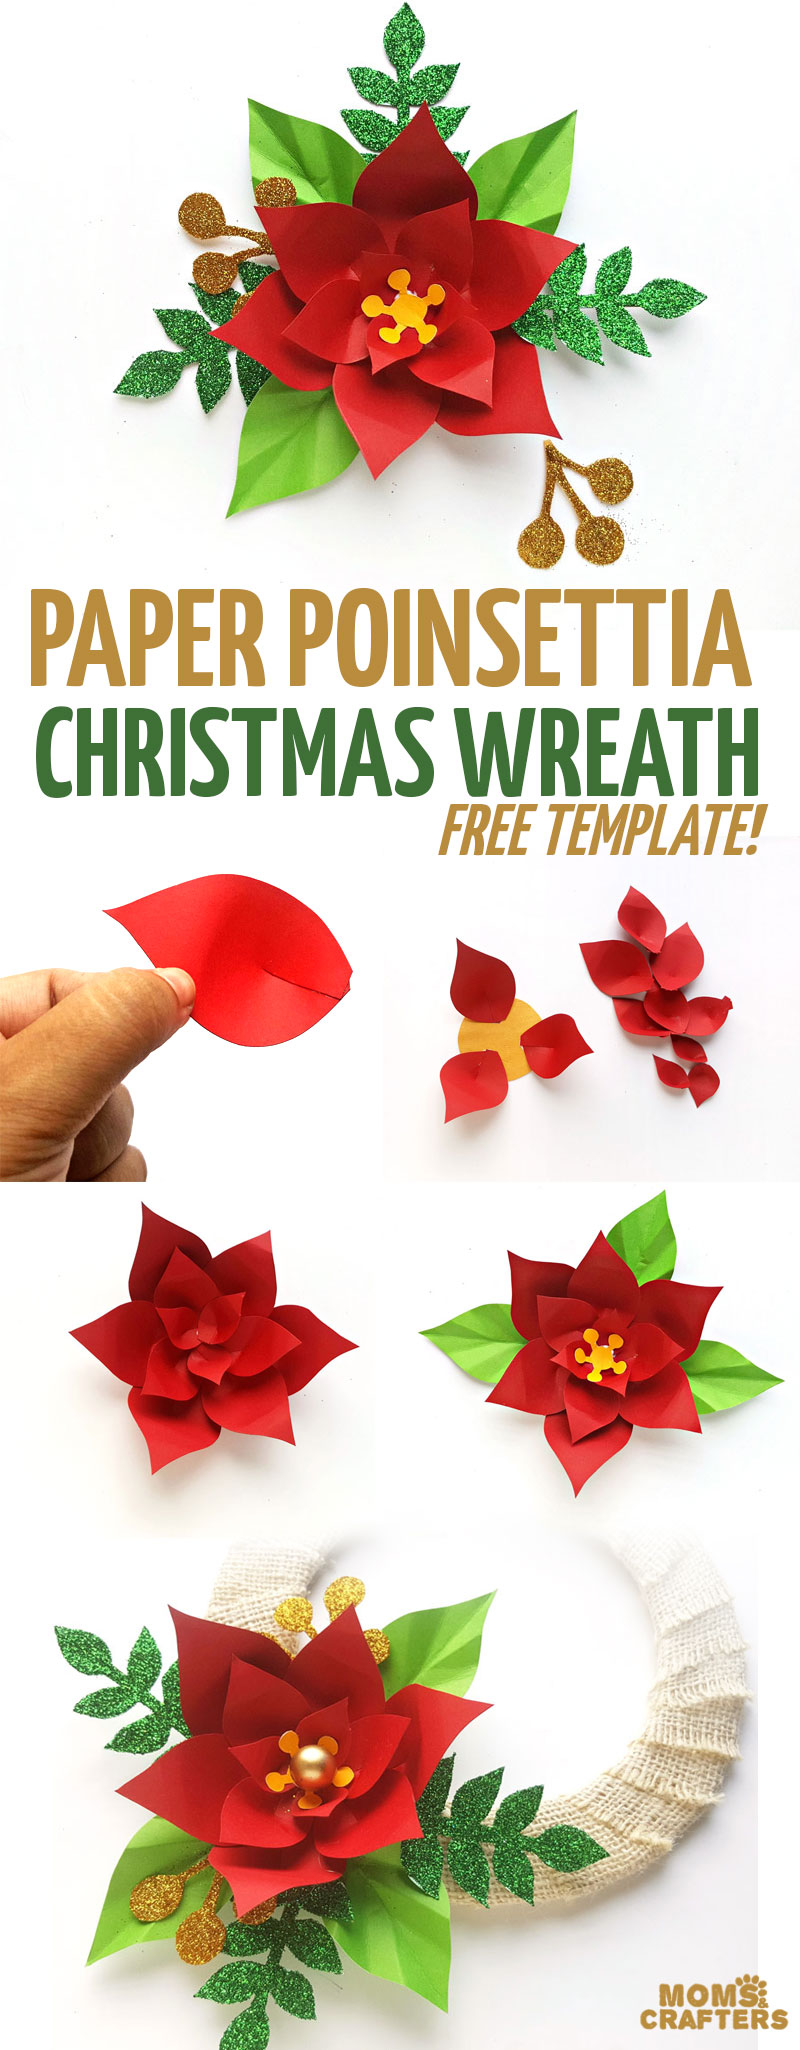 Paper Poinsettia Template Turn It Into A Diy Christmas Wreath